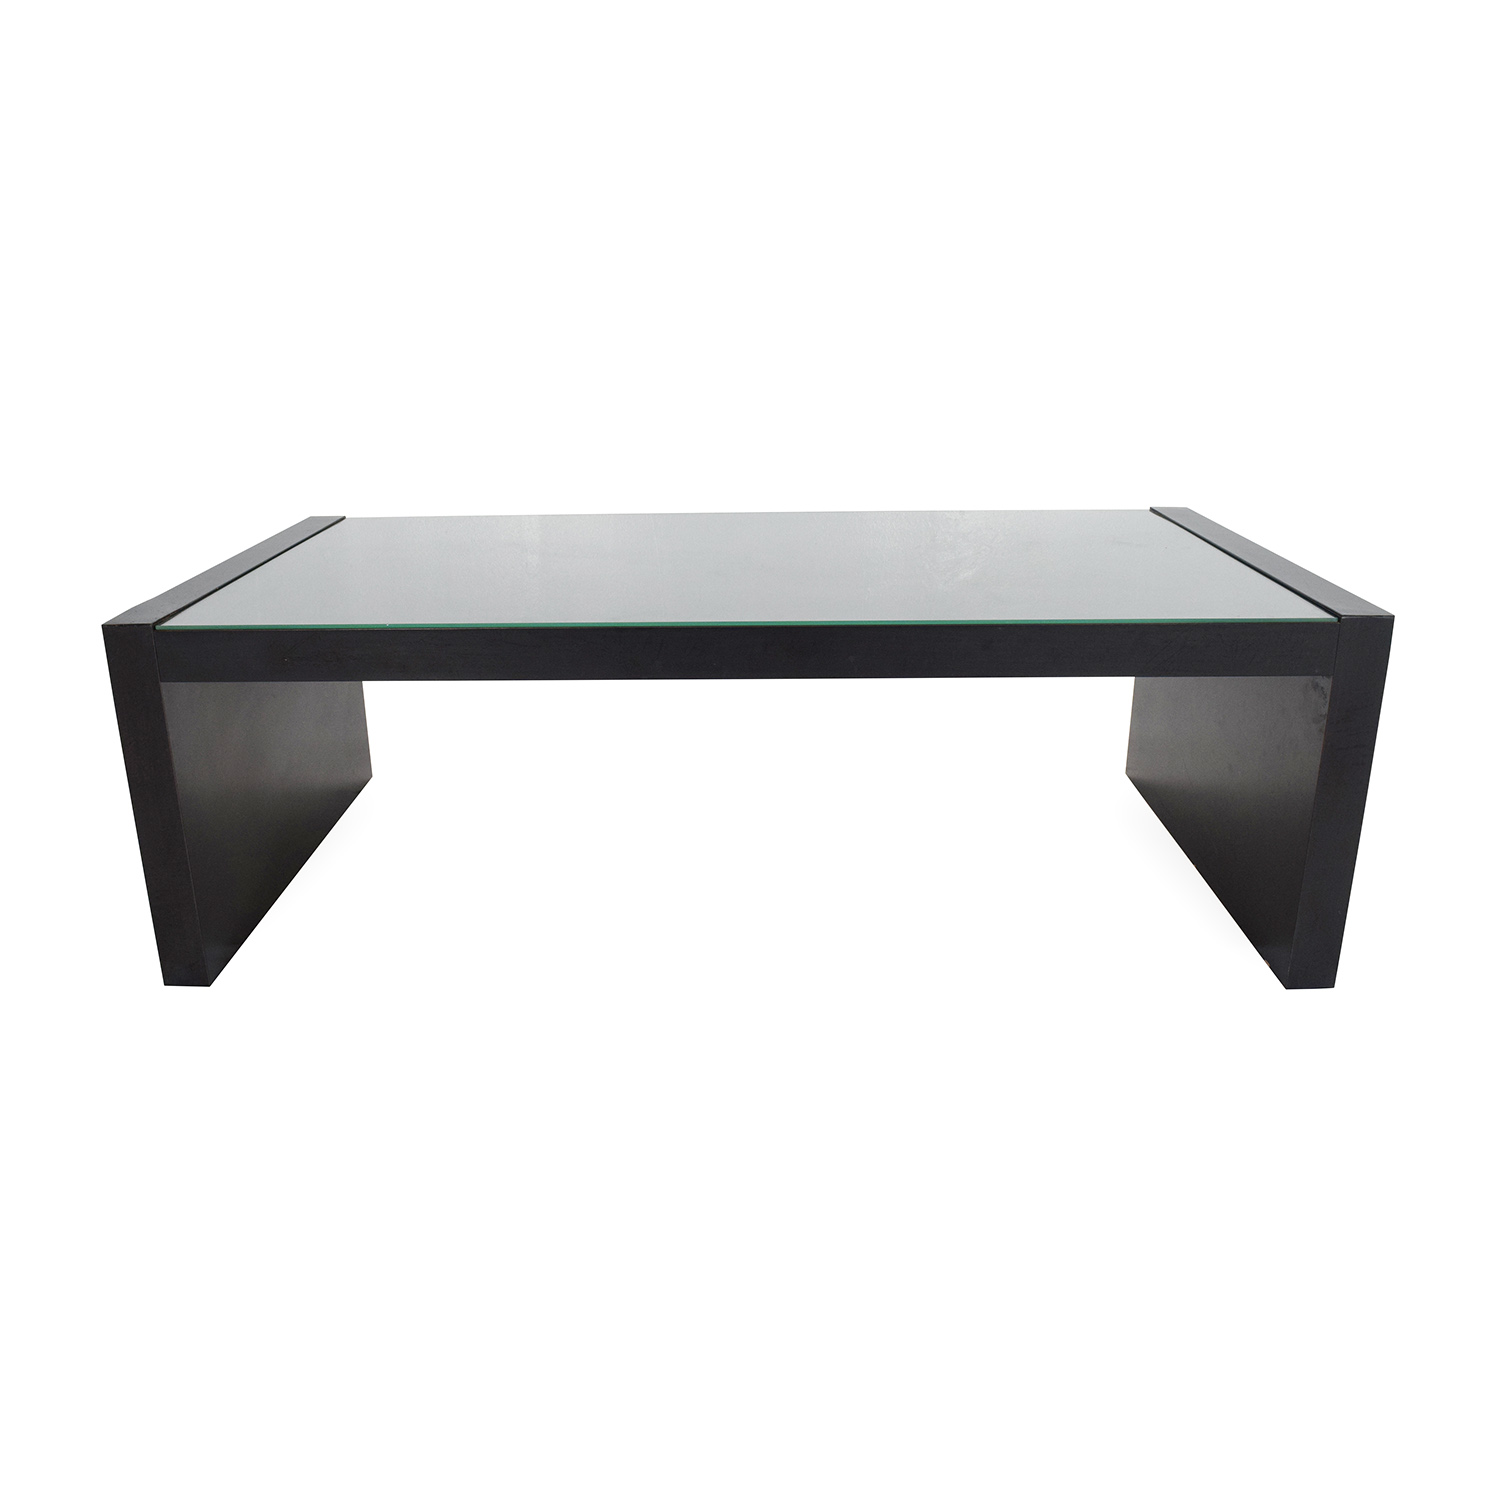 66 OFF Ikea Expedit Coffee Table Tables